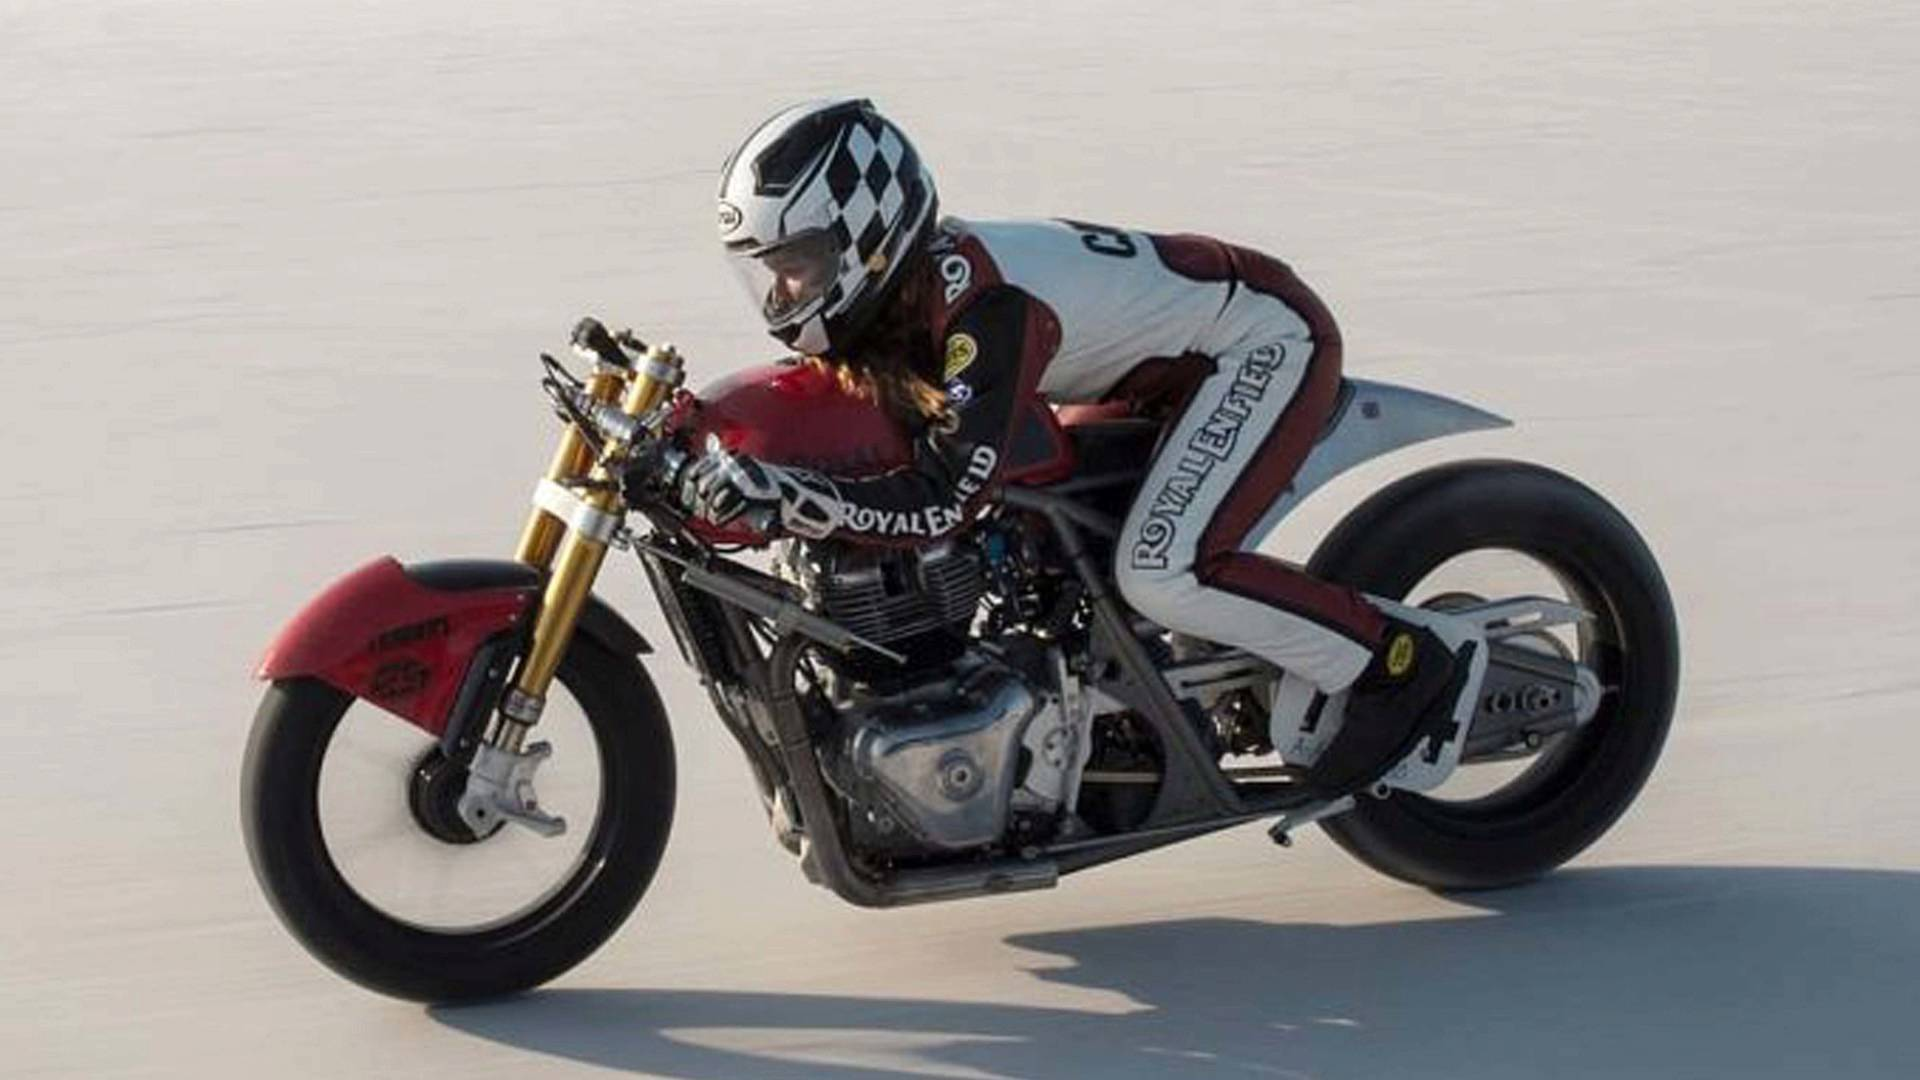 18 Year Old Sets Speed Record On New Royal Enfield